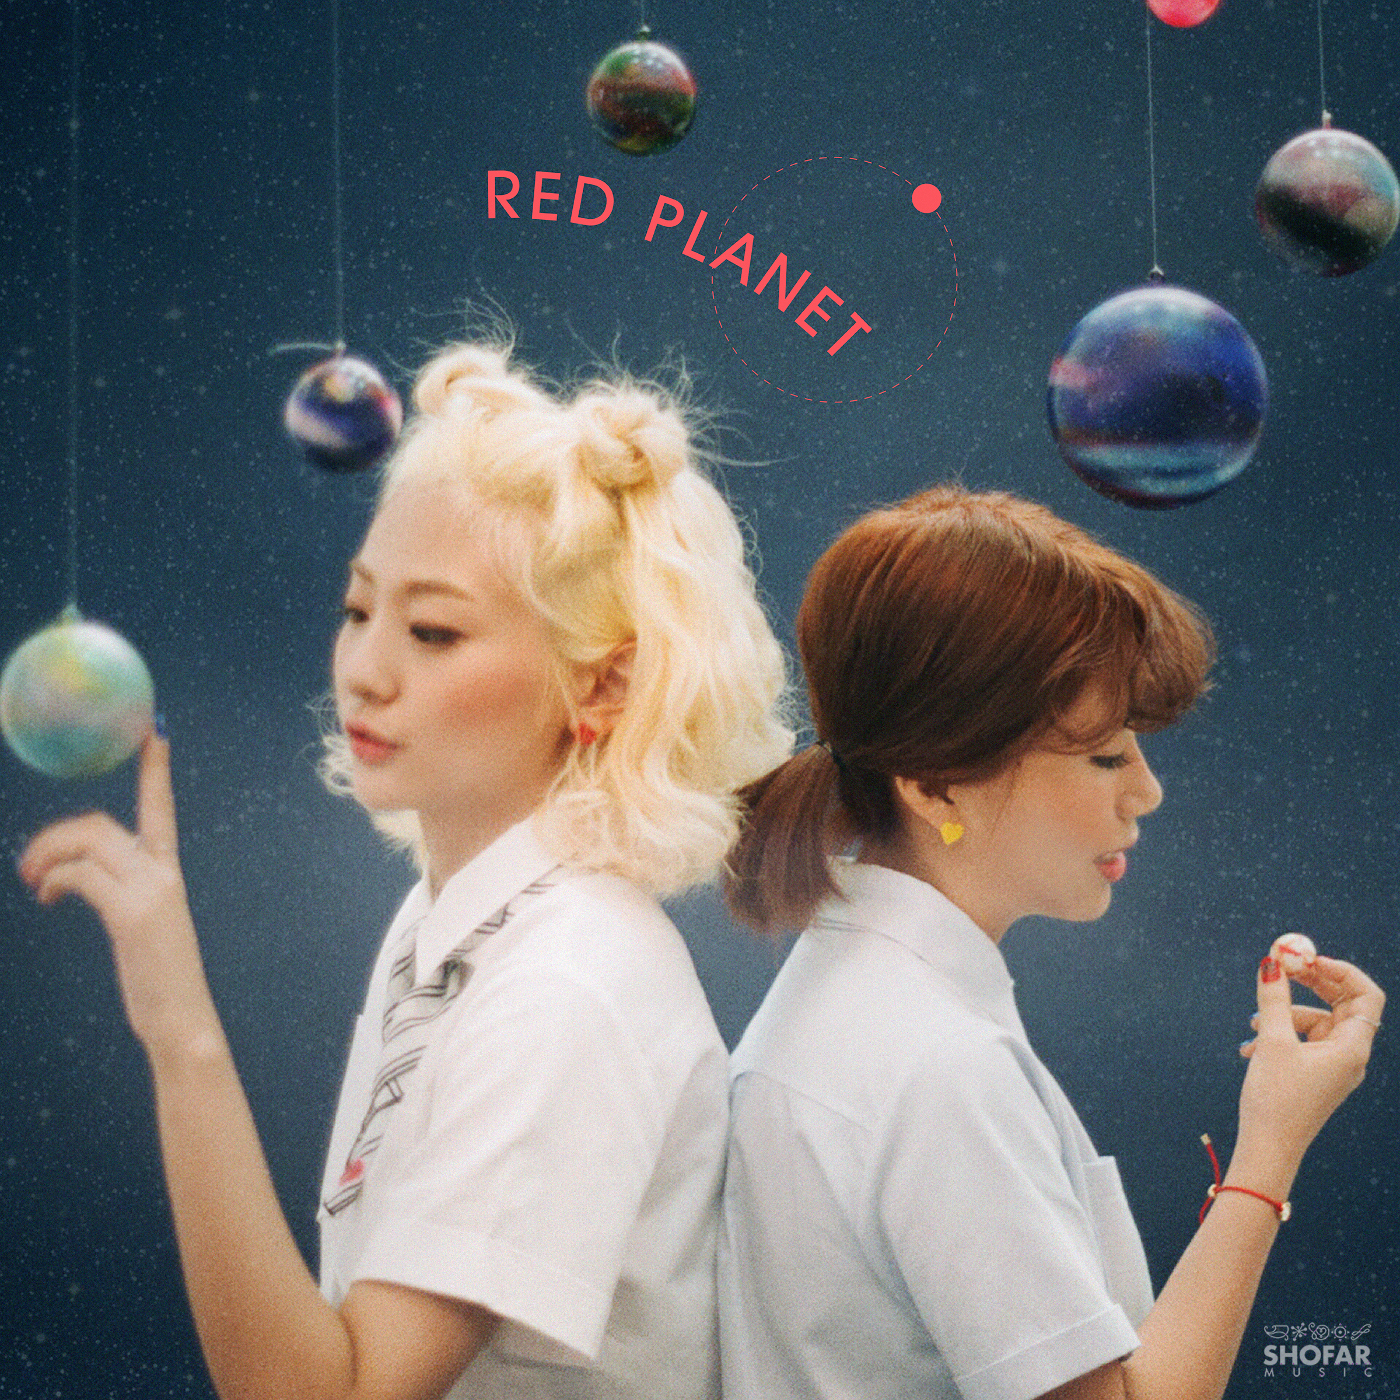 Full Album「RED PLANET」